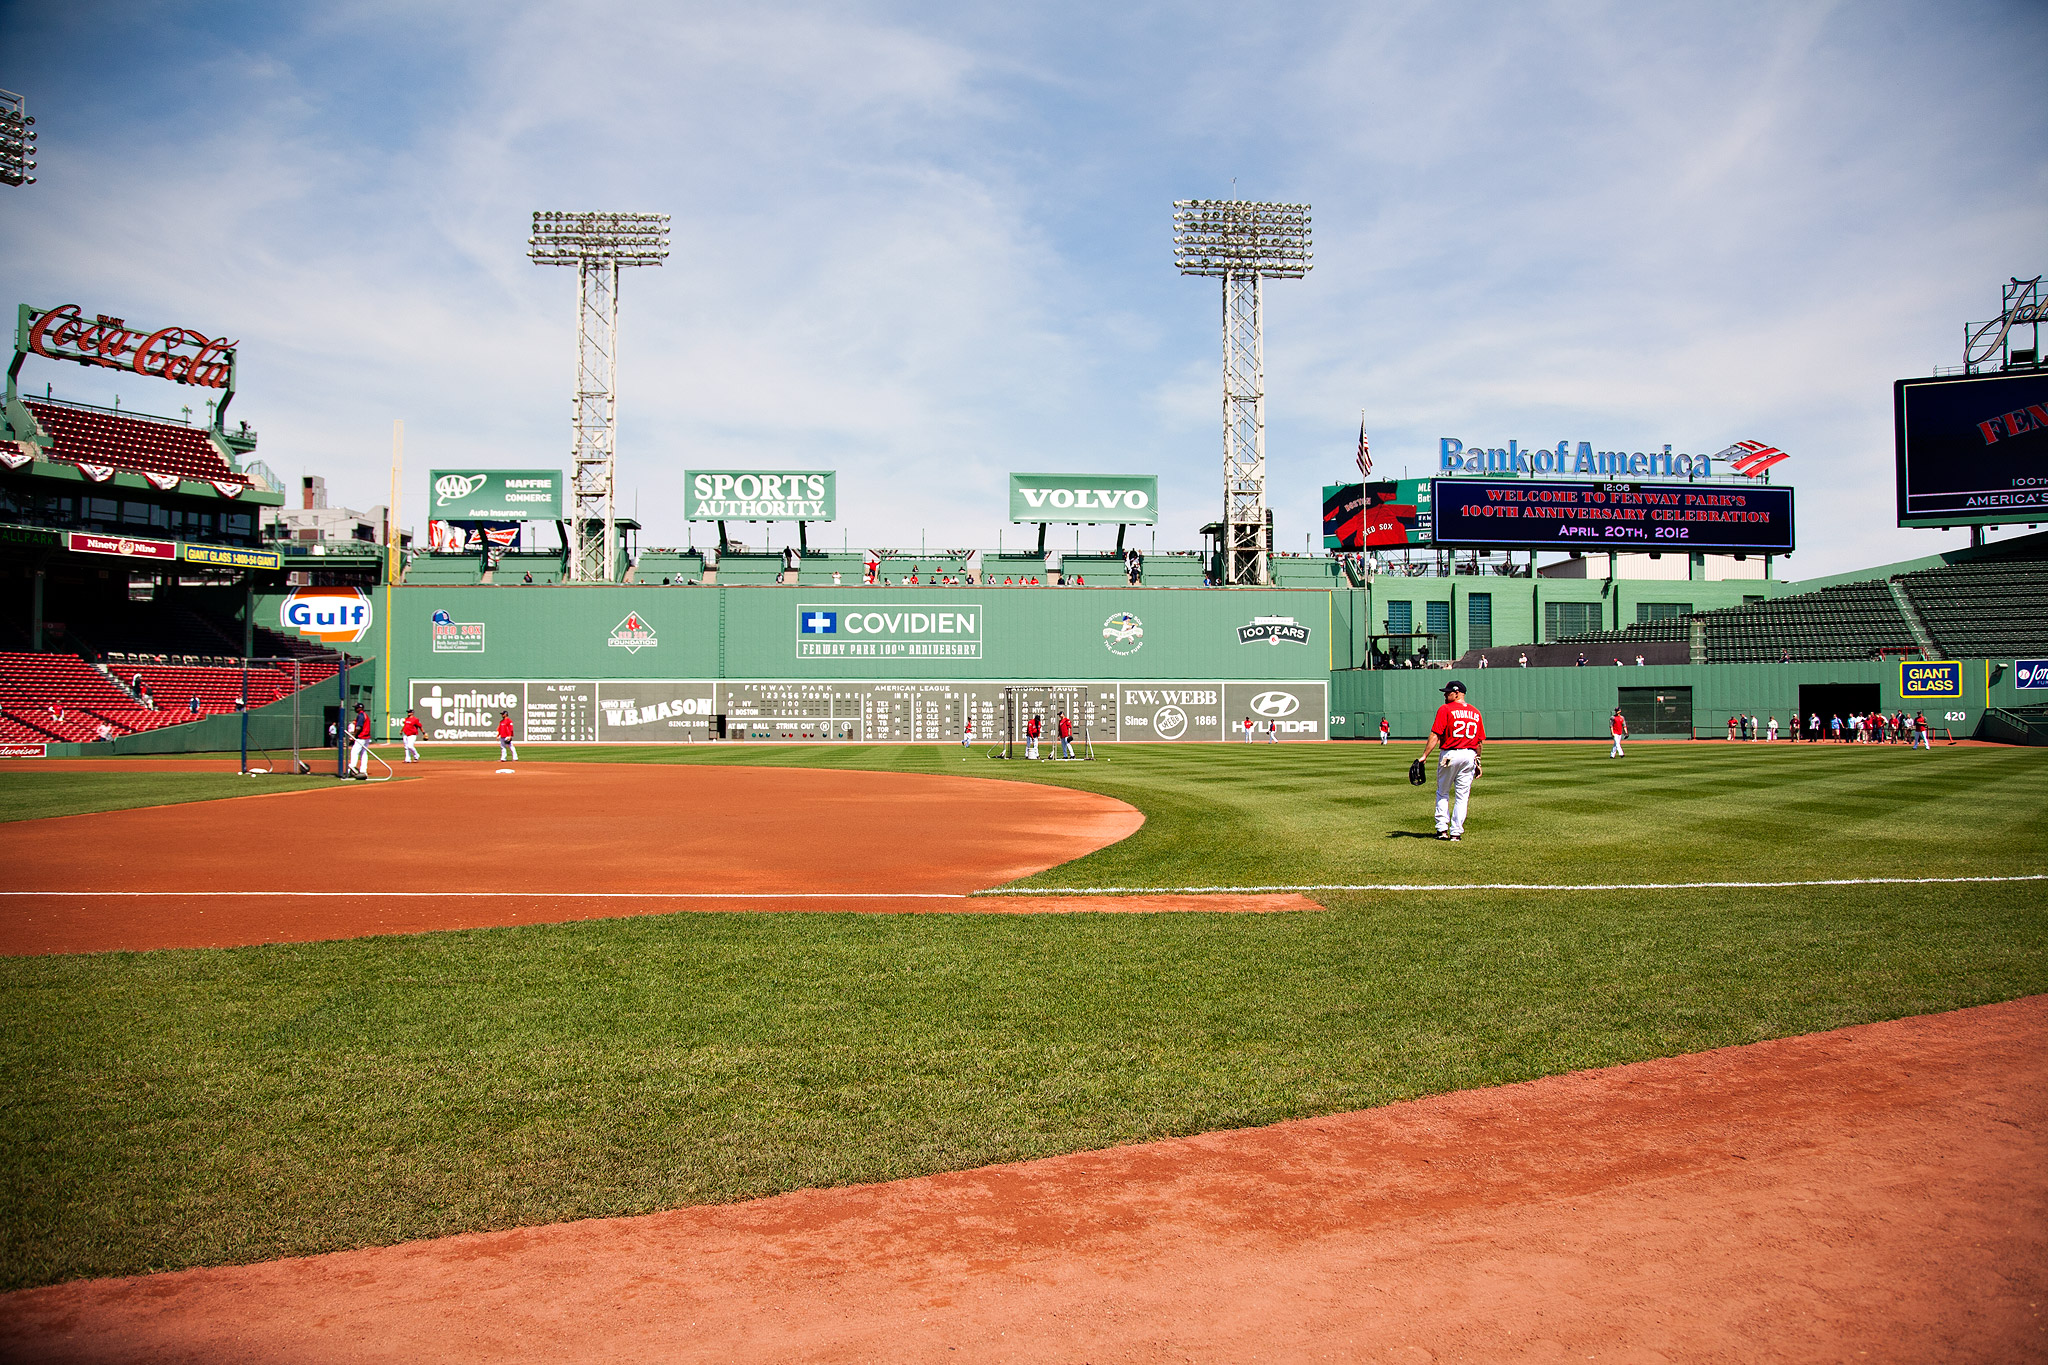 Fenway 100th Anniversary Game